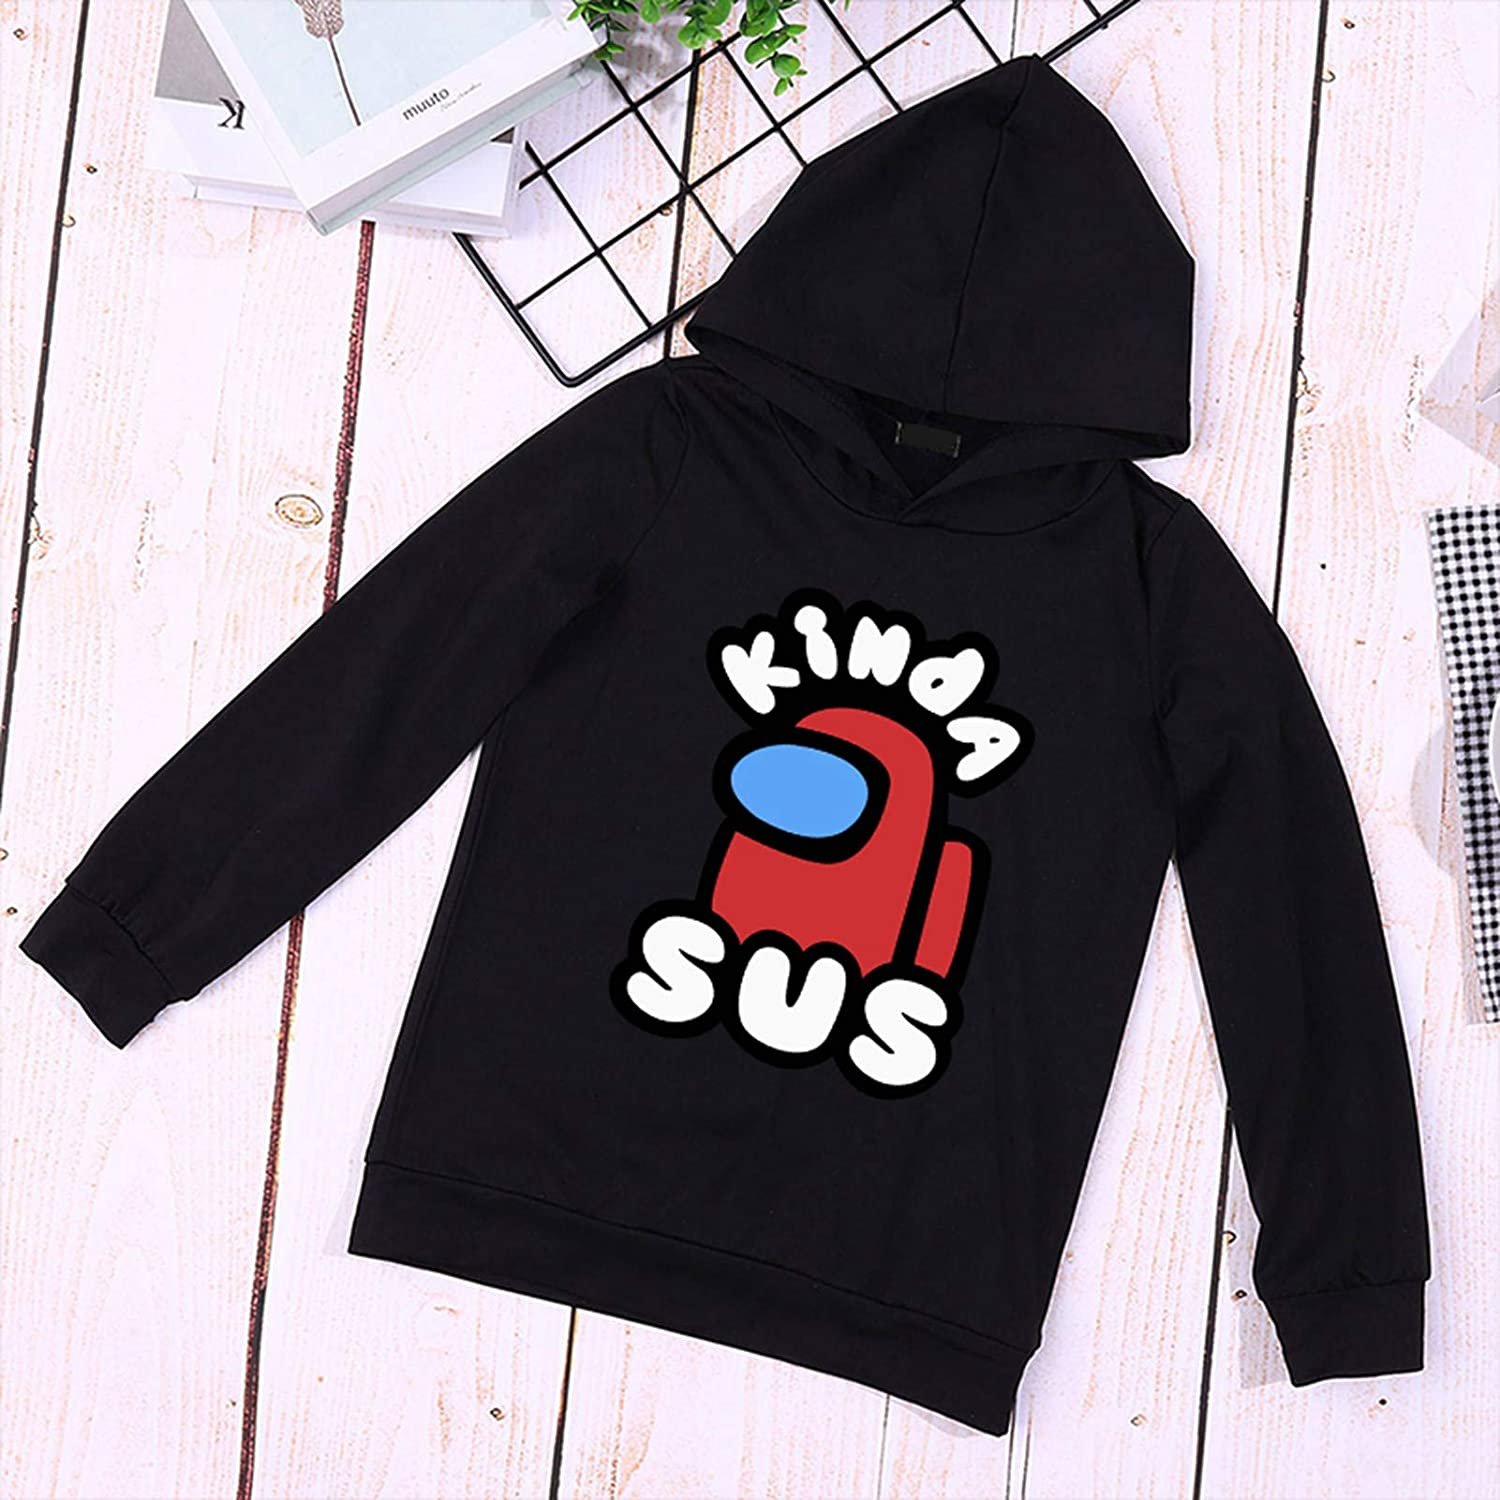 Queenromen Kids Among Us Hoodie with Trousers Tracksuit Game Lovers 2 Piece Set Suit